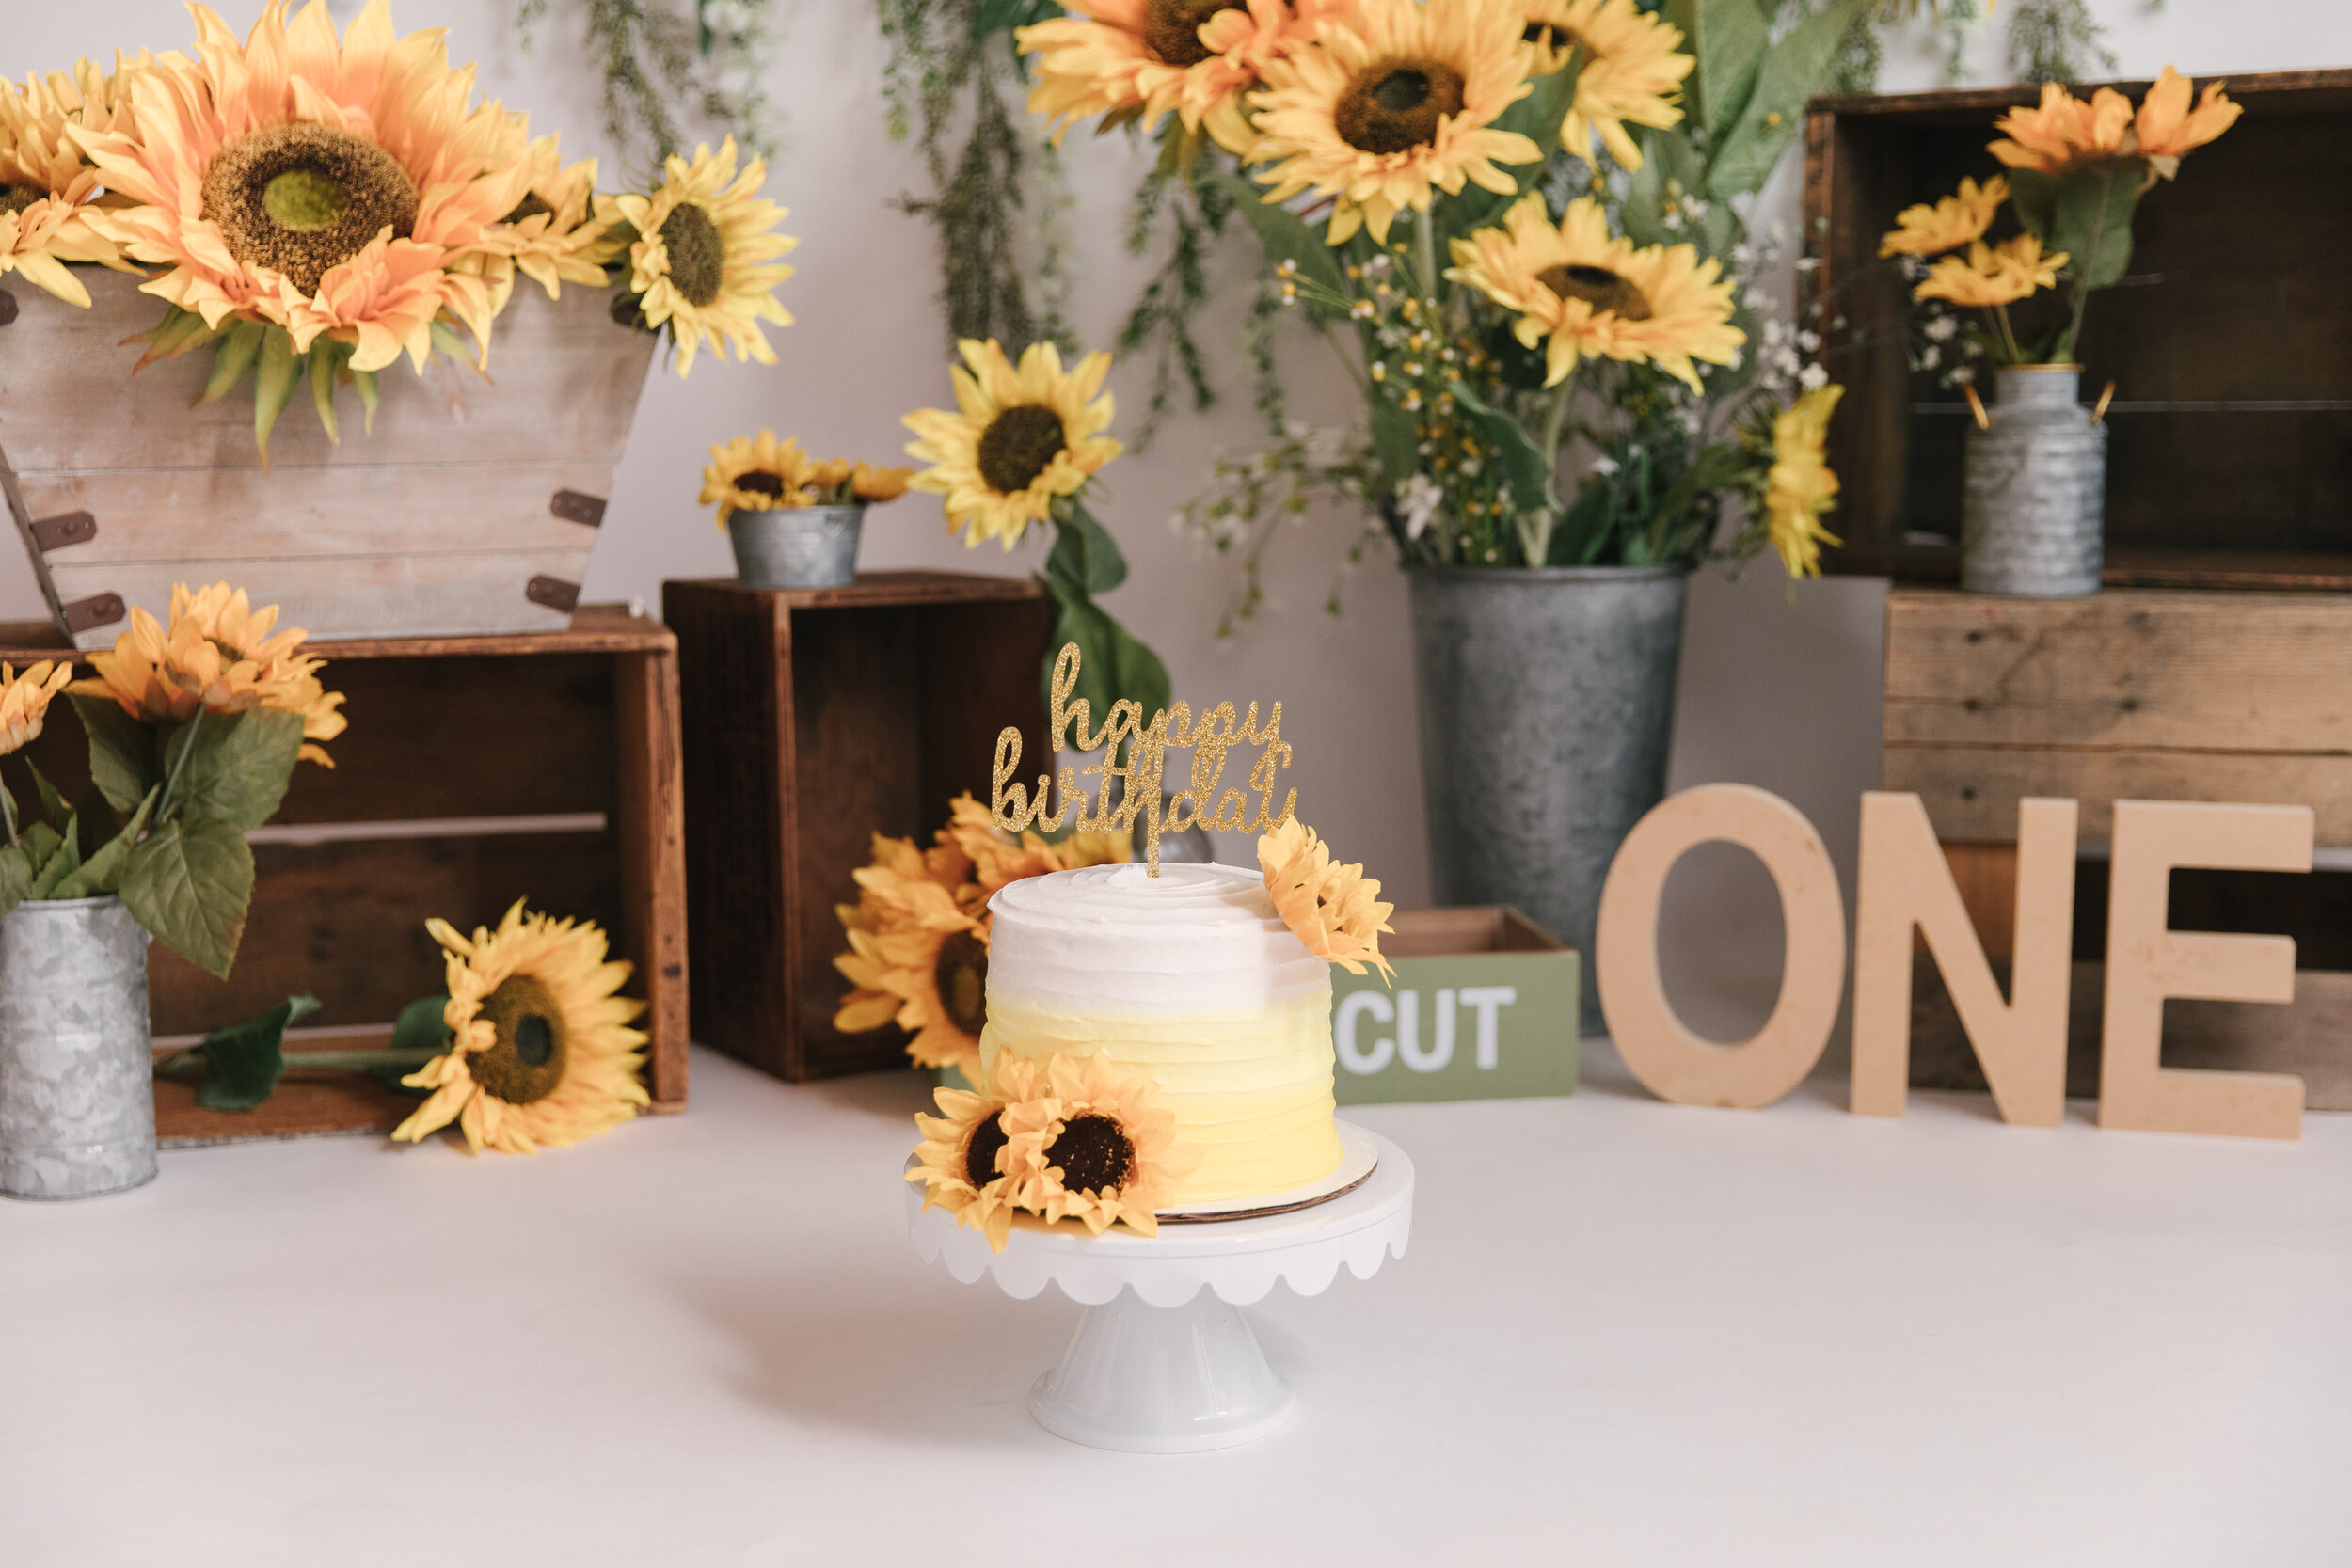 Sunflower_Themed_First_Birthday_Studio_Session_Smash_Session_Little_Girl_Turns_One_Ombre Smash_Cake_with_Christie_Leigh_Photo_Cortland_Ohio-2.JPG